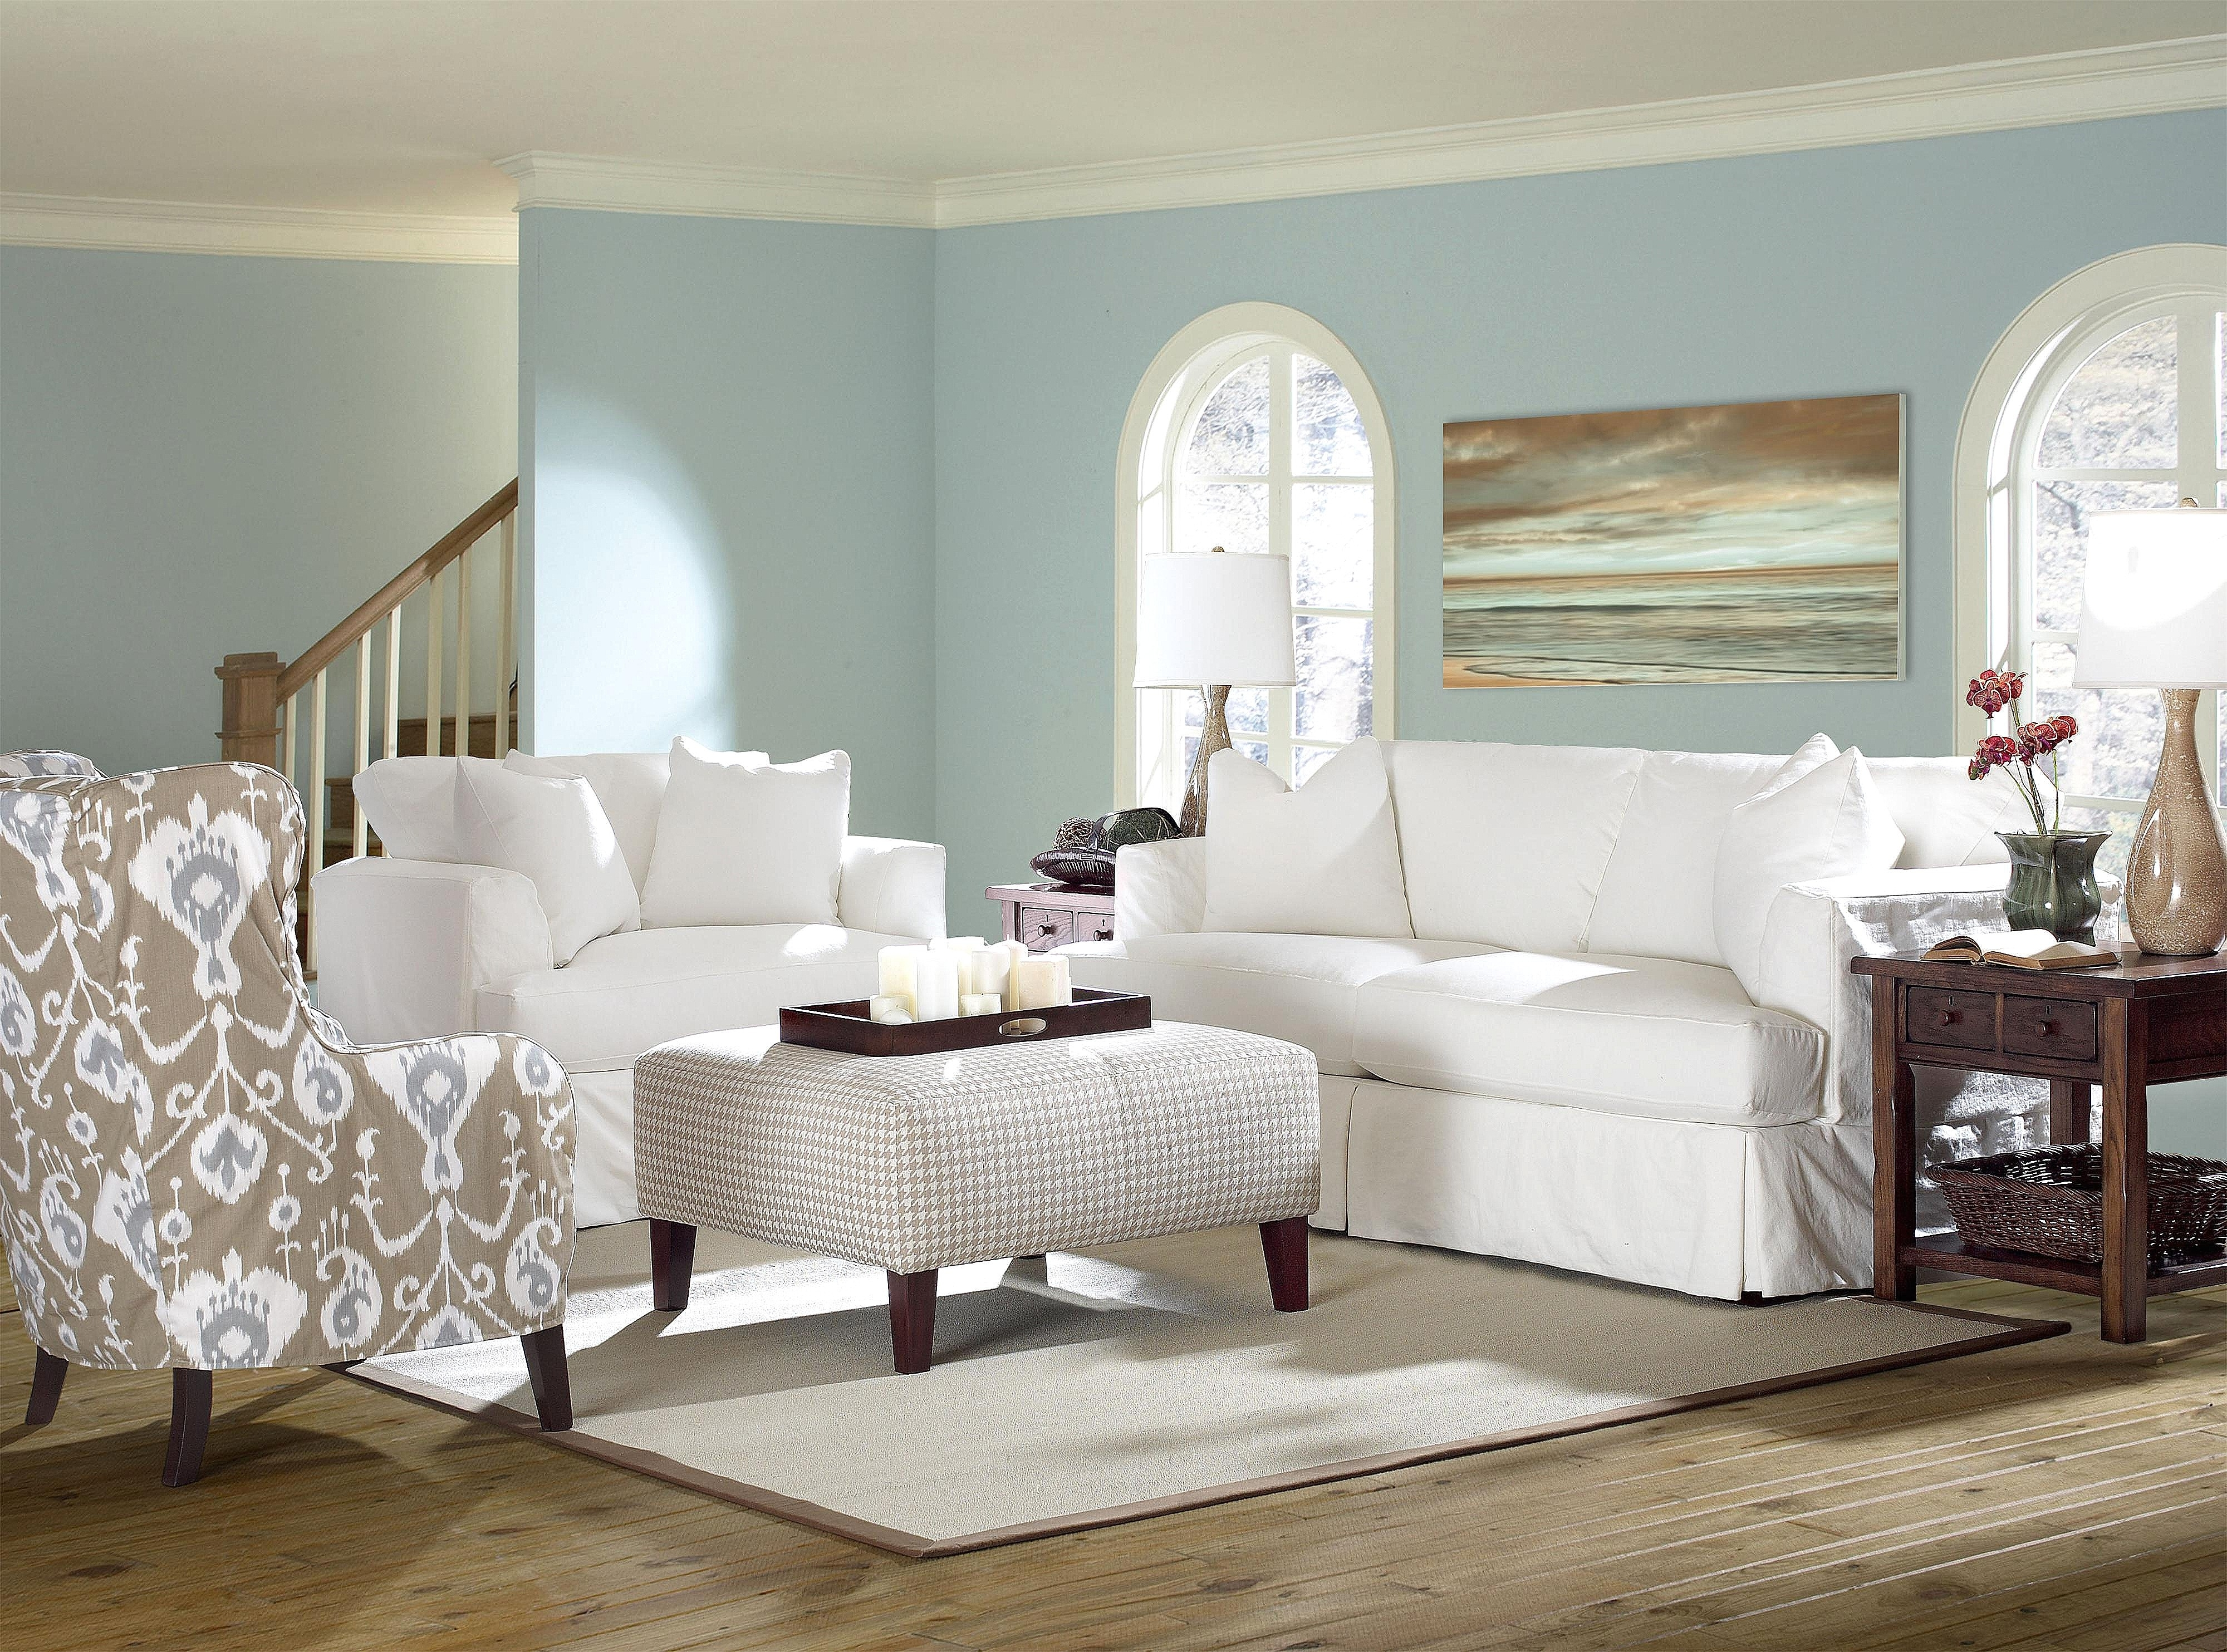 Widely Used Oversized Sofa Chairs Regarding New Oversized Chairs For Living Room (39 Photos (View 13 of 20)